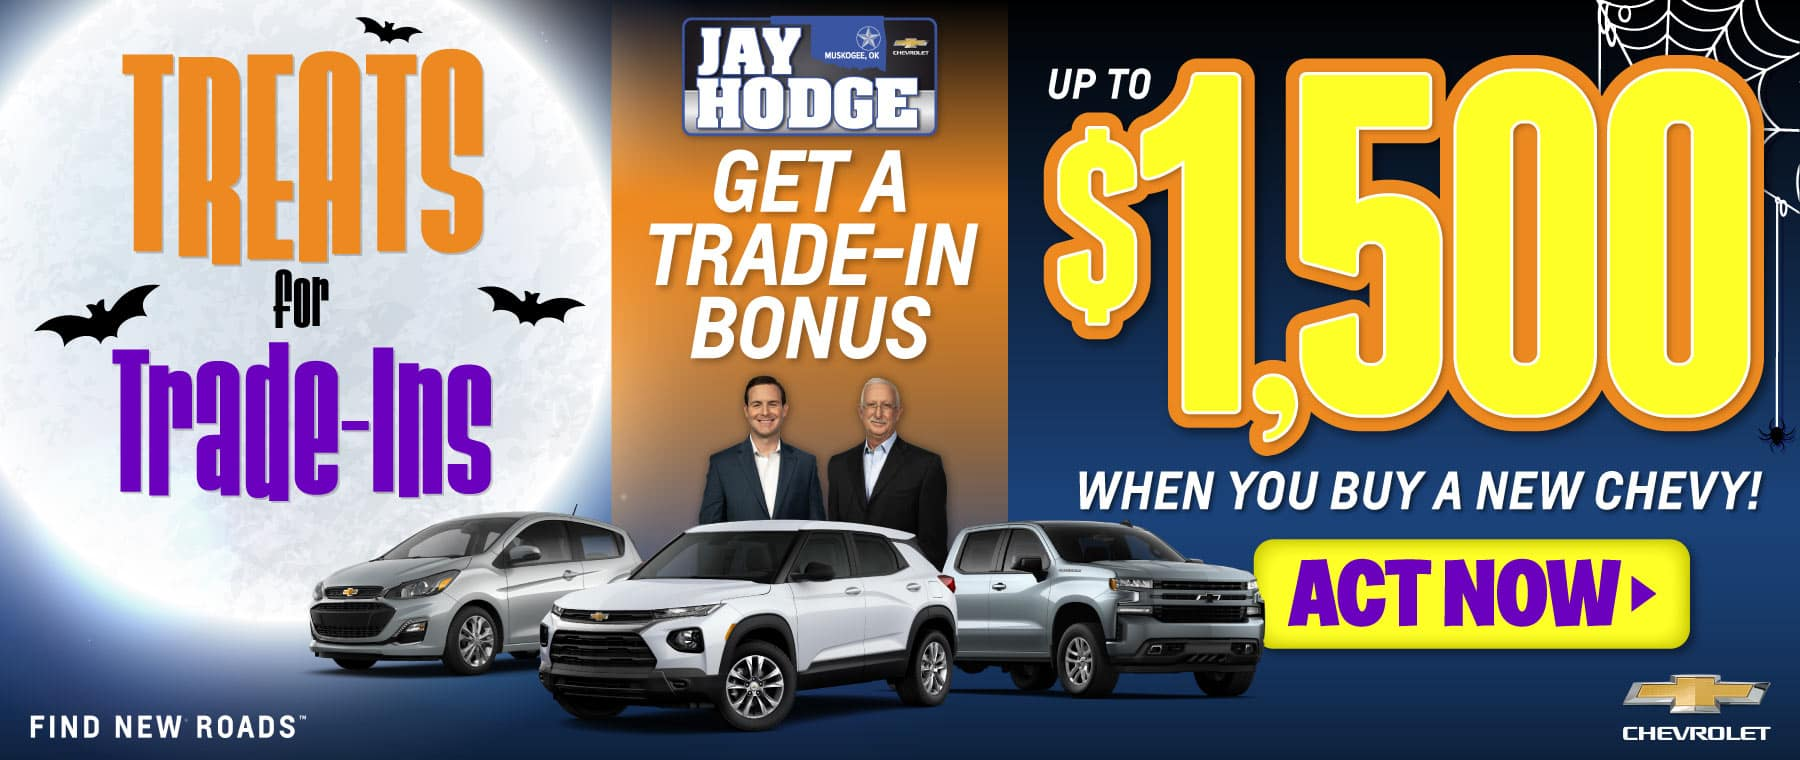 $1500 Trade In Bonus with the purchase of a New Chevrolet - ACT NOW